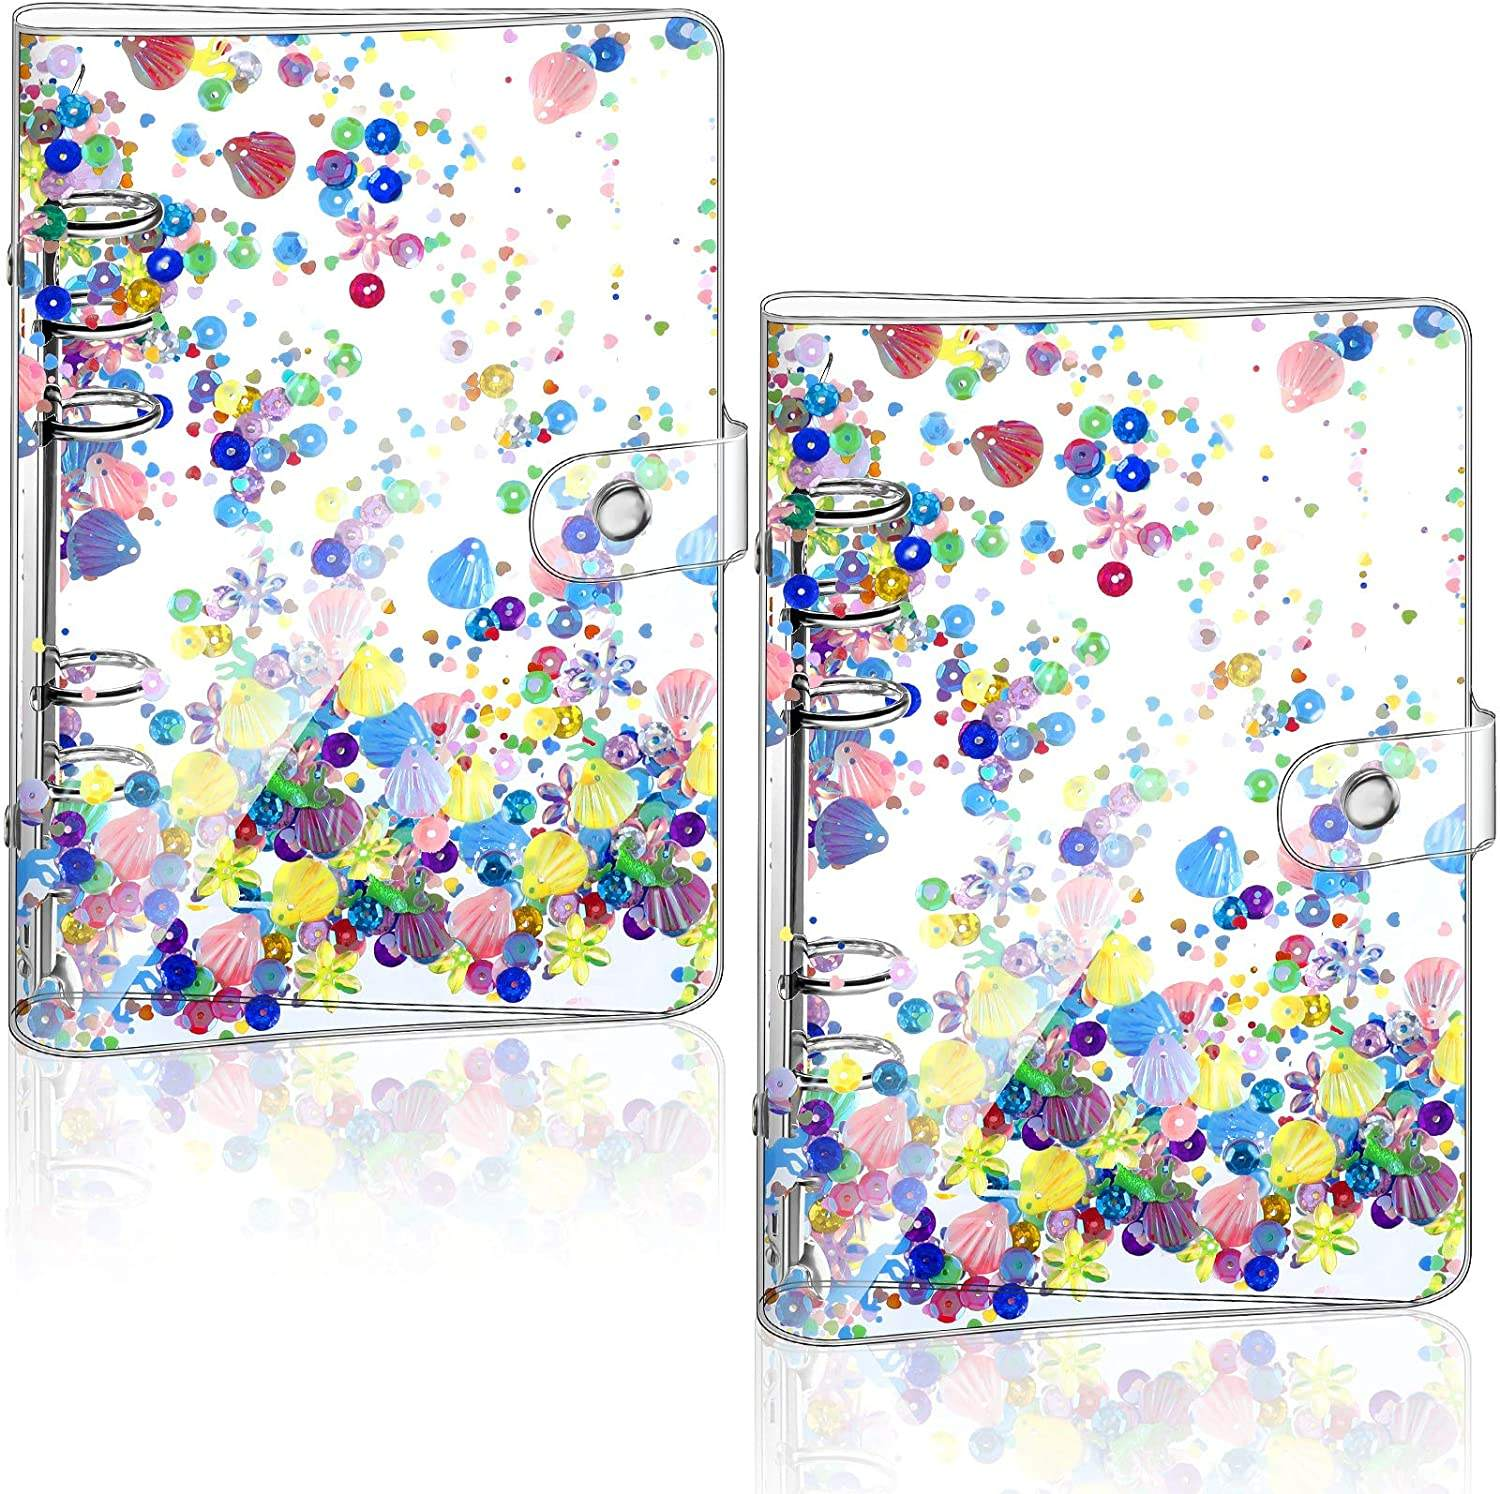 Binder Cover Transparent PVC Fill Notebook Cover with Flash Sequins and Button Seals Suitable for A6 Fill Paper Loose Notepad